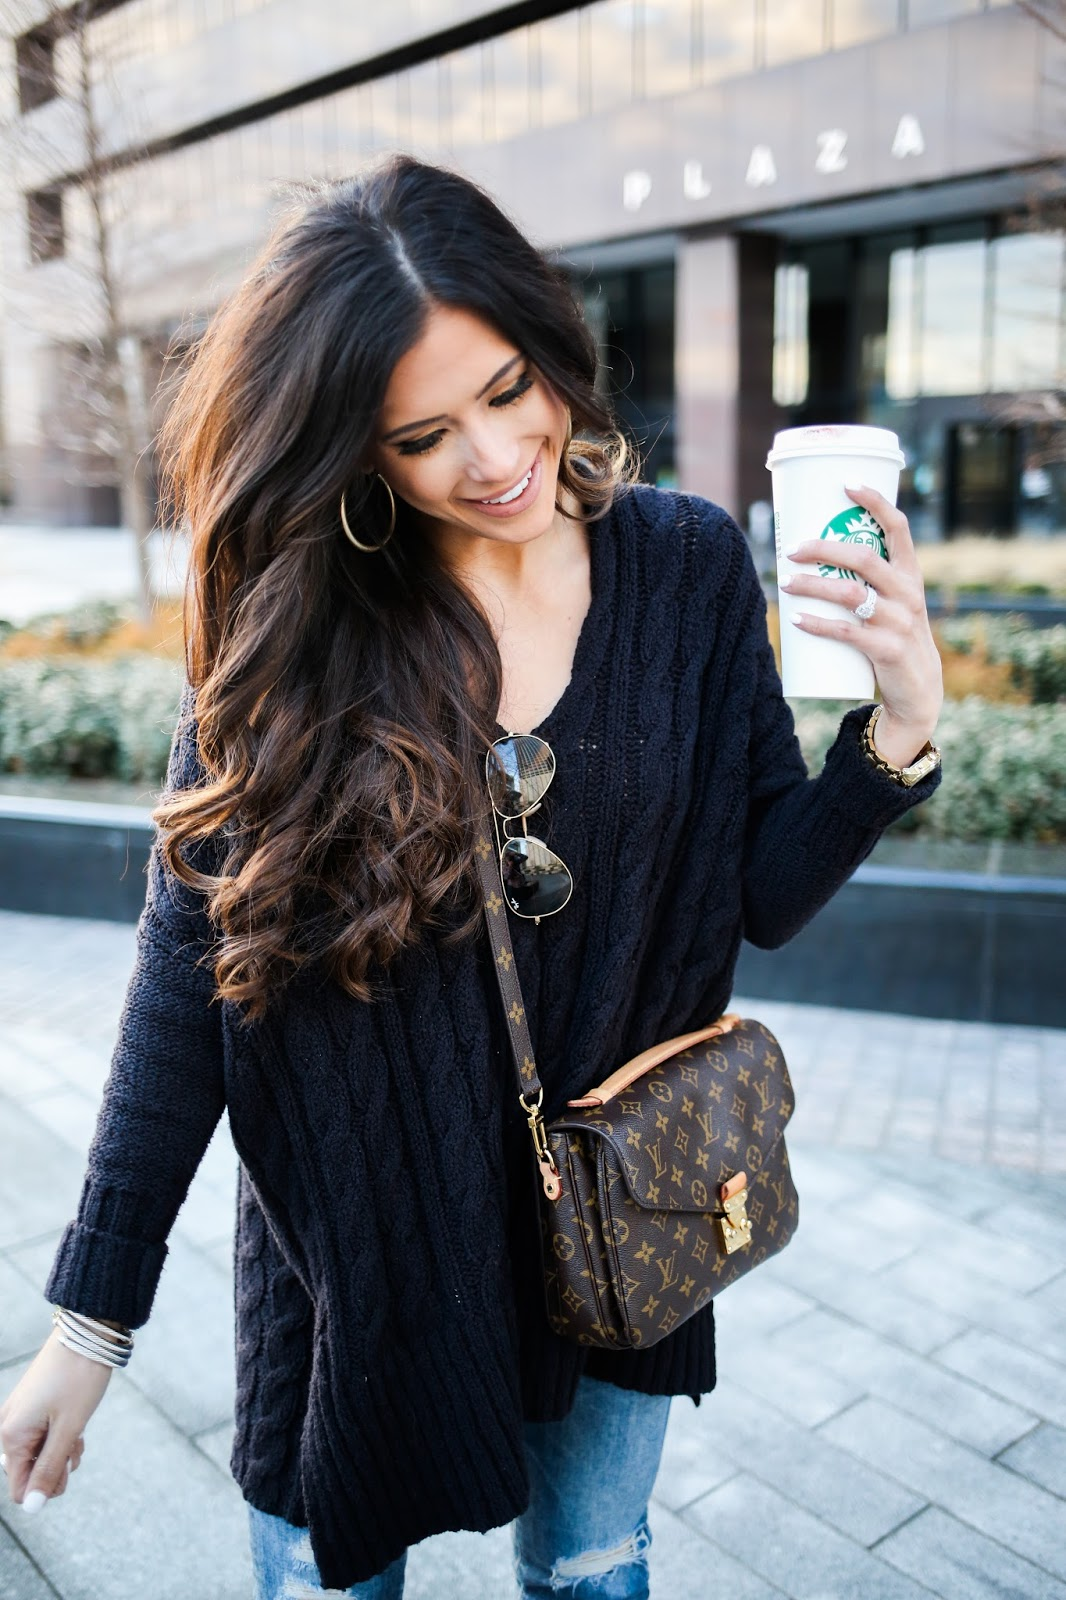 Oversized Cable Knit The Sweetest Thing Bloglovin